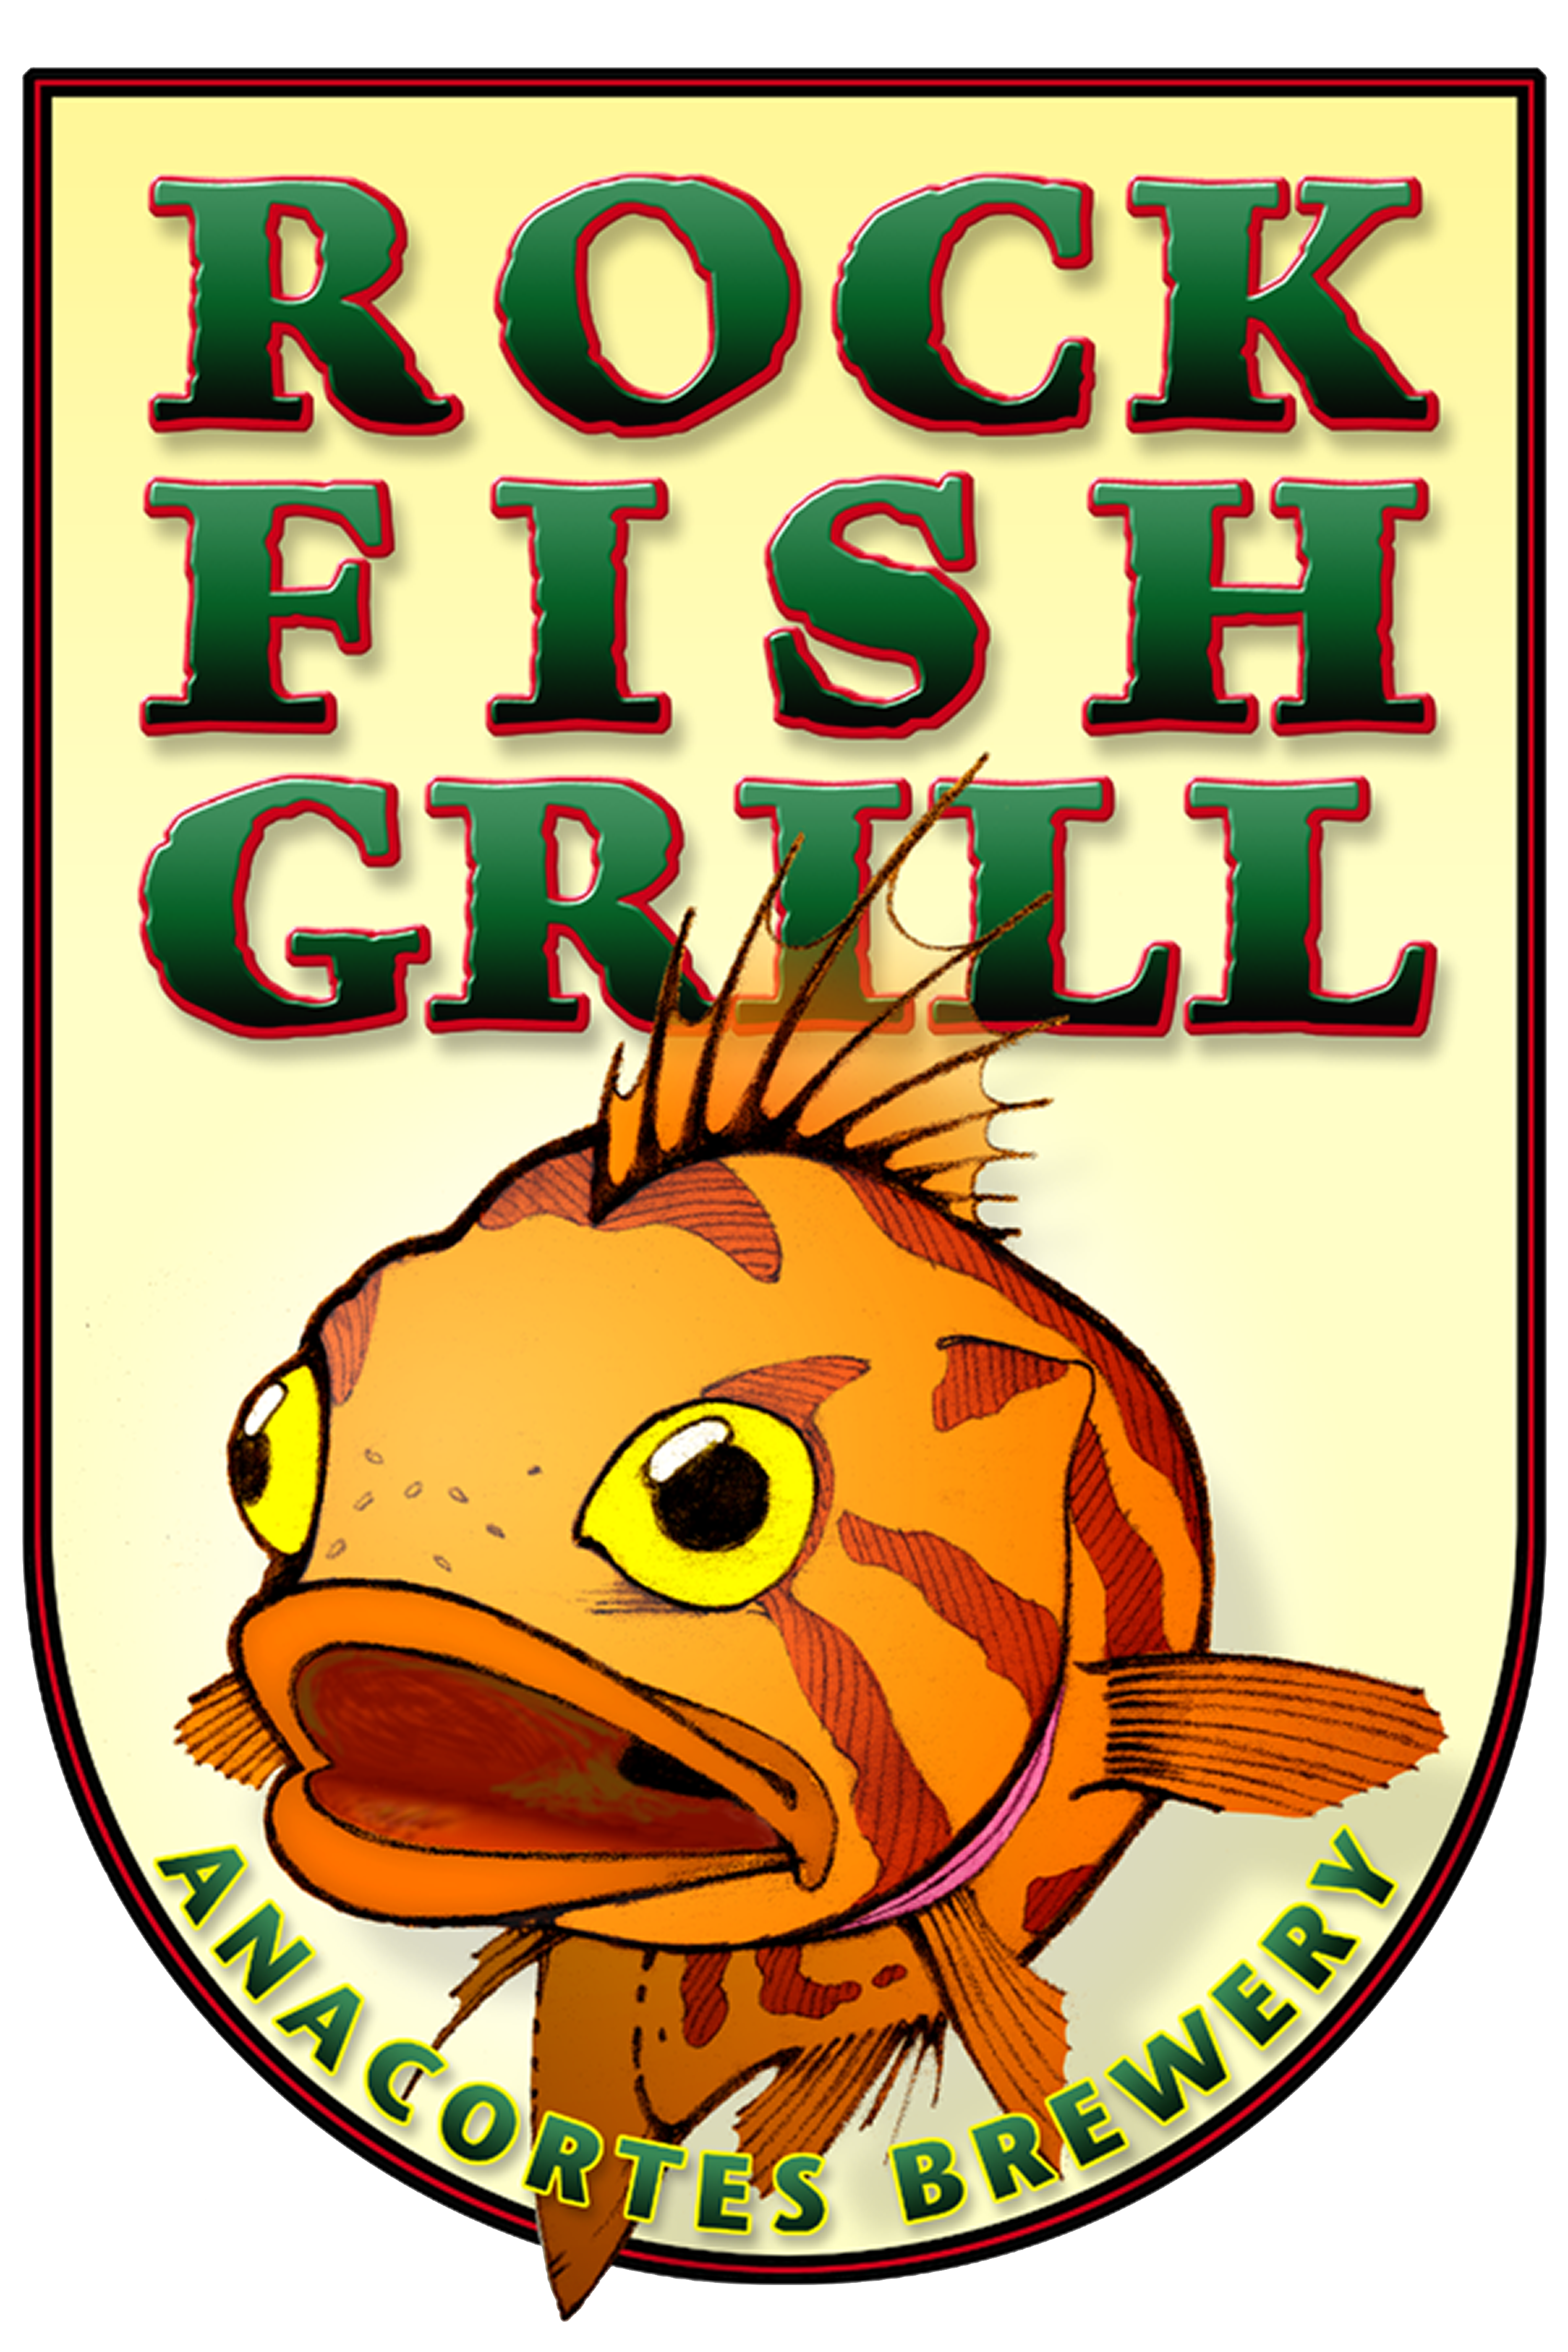 The Rockfish Grill - Pizza, Seafood, Beer, & Live Music in Anacortes